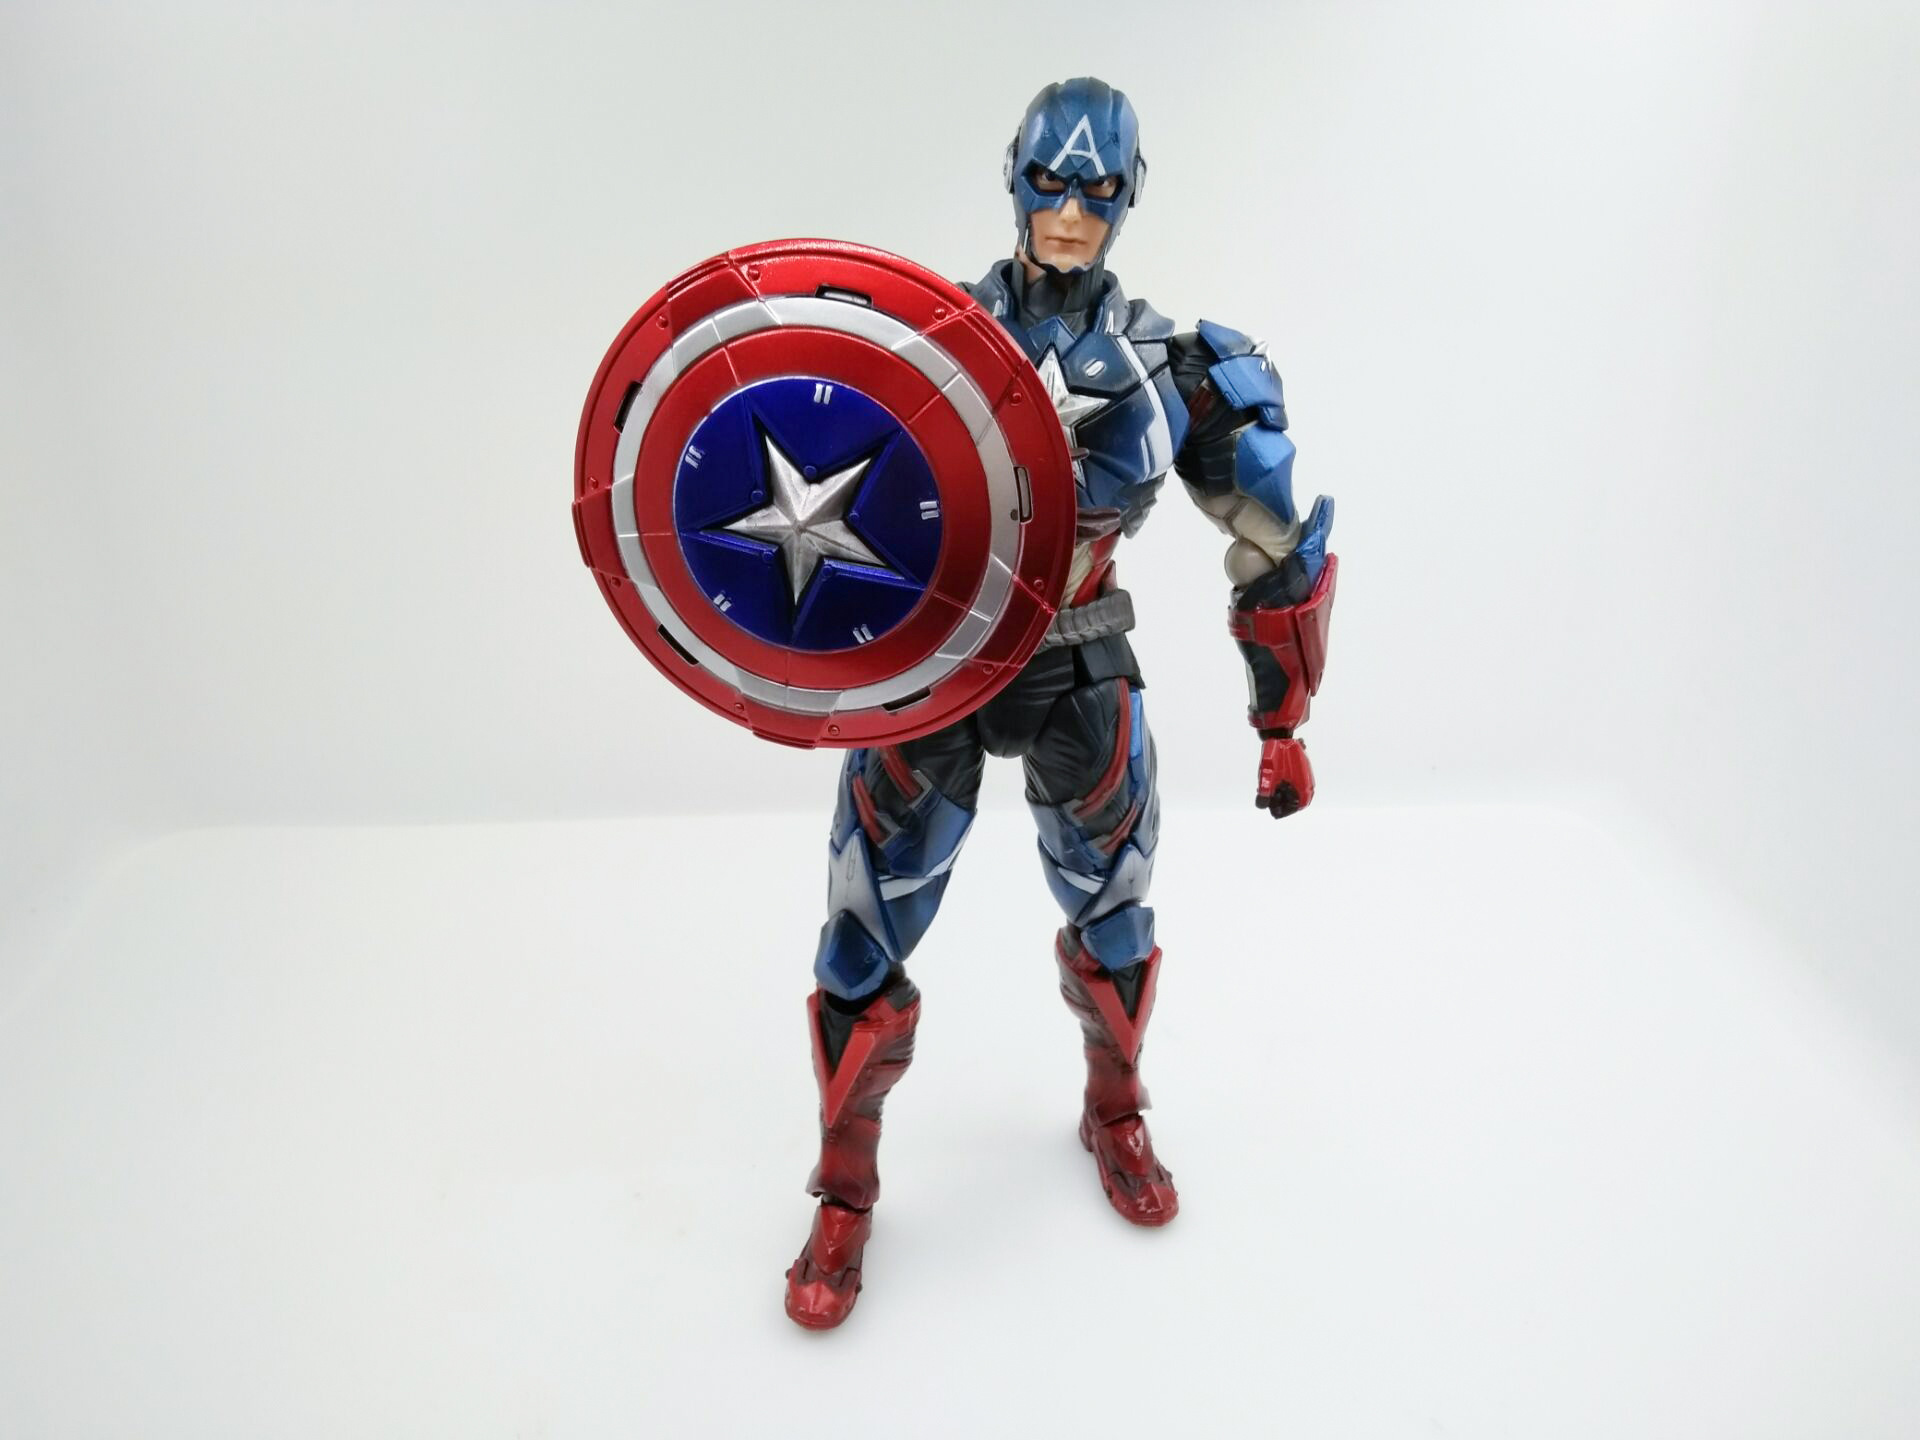 WVW 25.5CM Hot Sale The Avengers Movie Hero Captain America Play Arts Model PVC Toy Action Figure Decoration For Collection Gift цена и фото